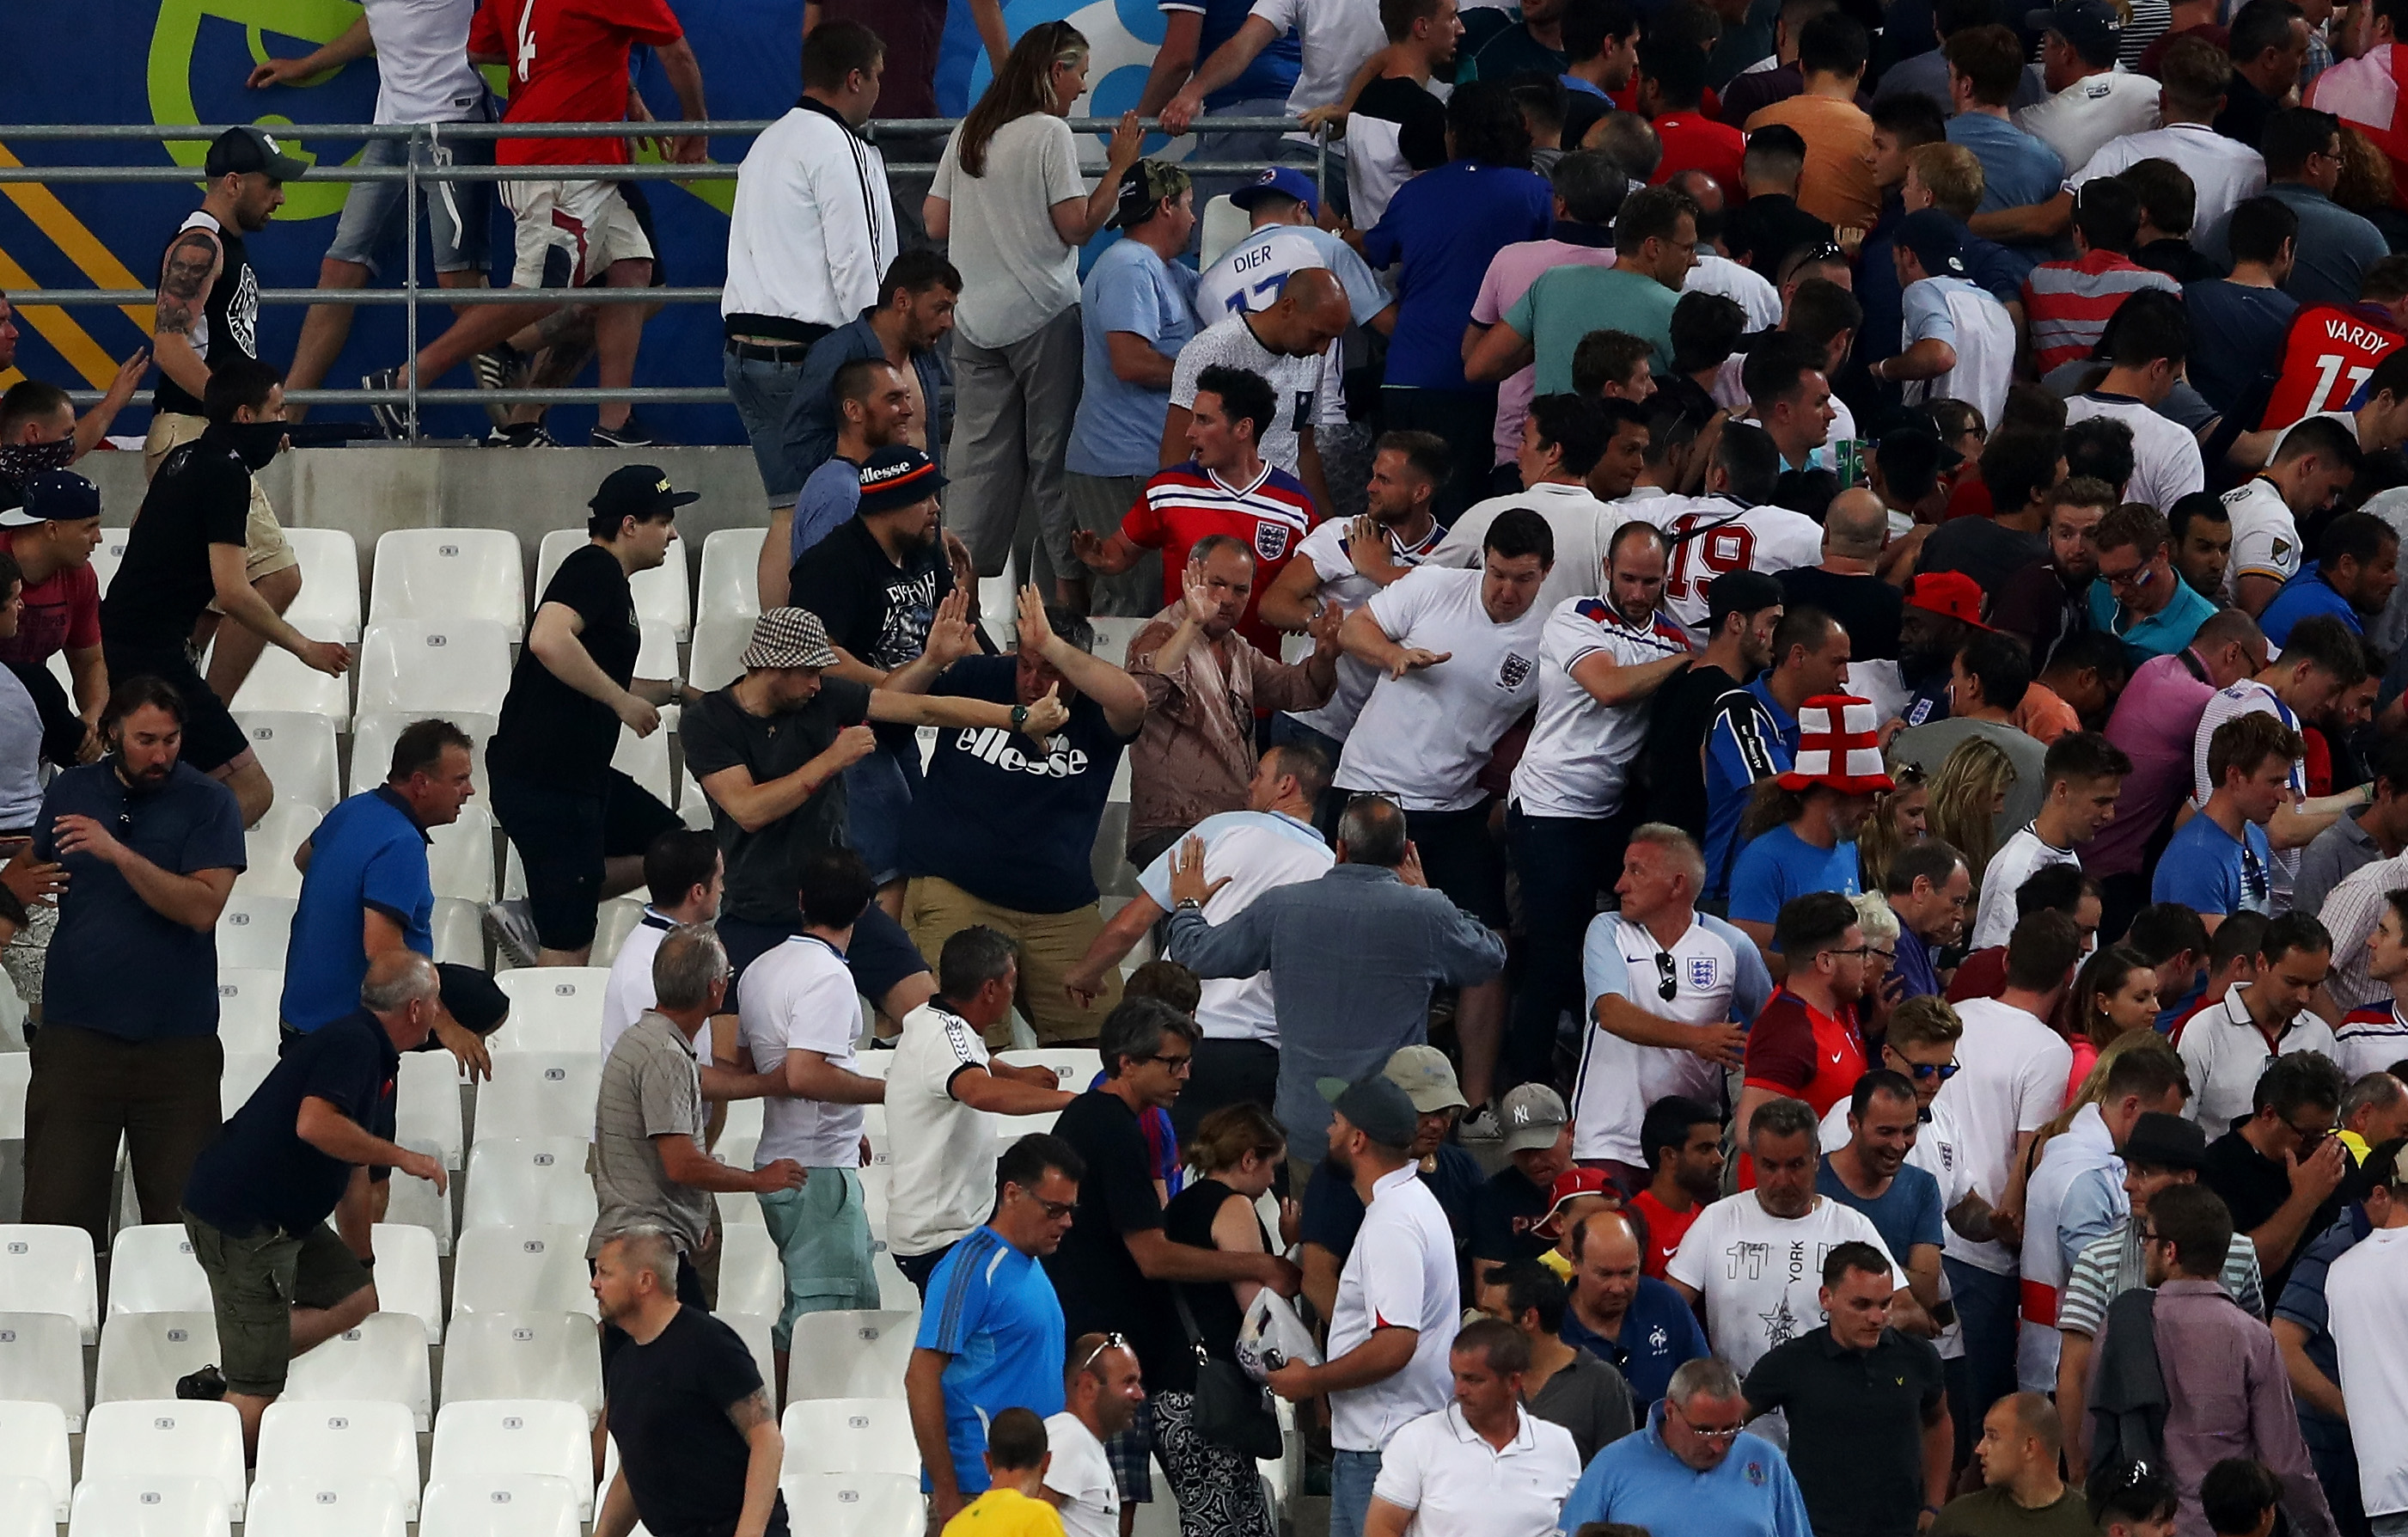 Fans clash after the UEFA EURO 2016 Group B match between England and Russia at Stade Velodrome on June 11, 2016 in Marseille, France.